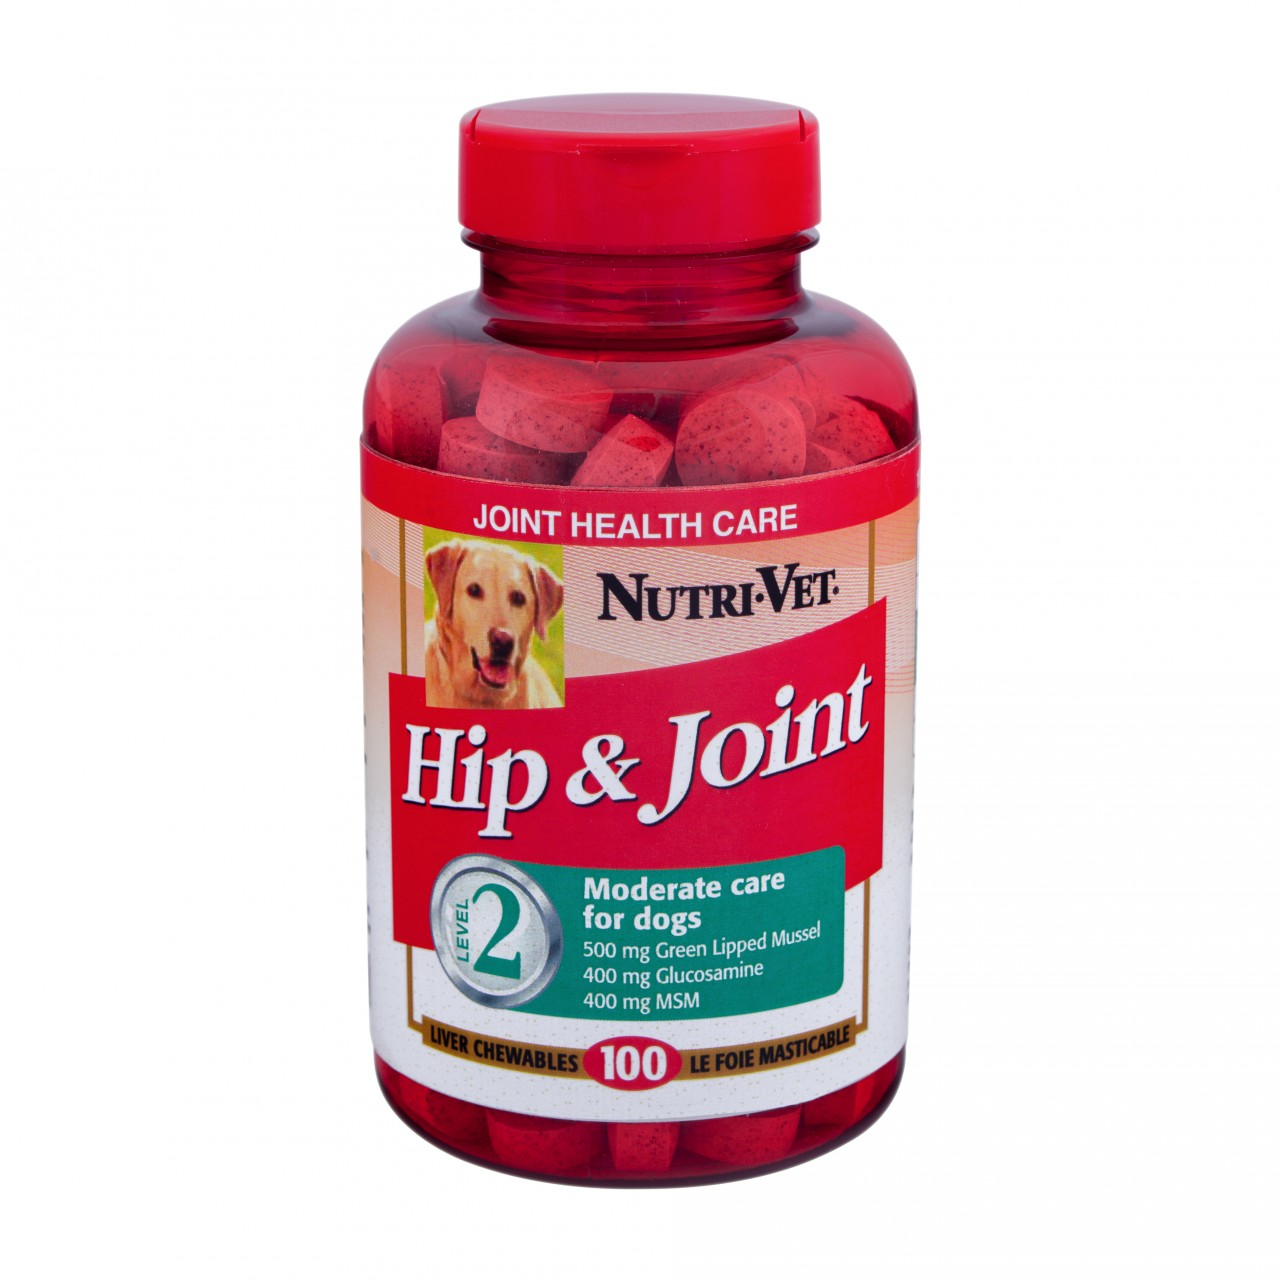 Nutri-Vet Hip & Joint Level 2 Chewables